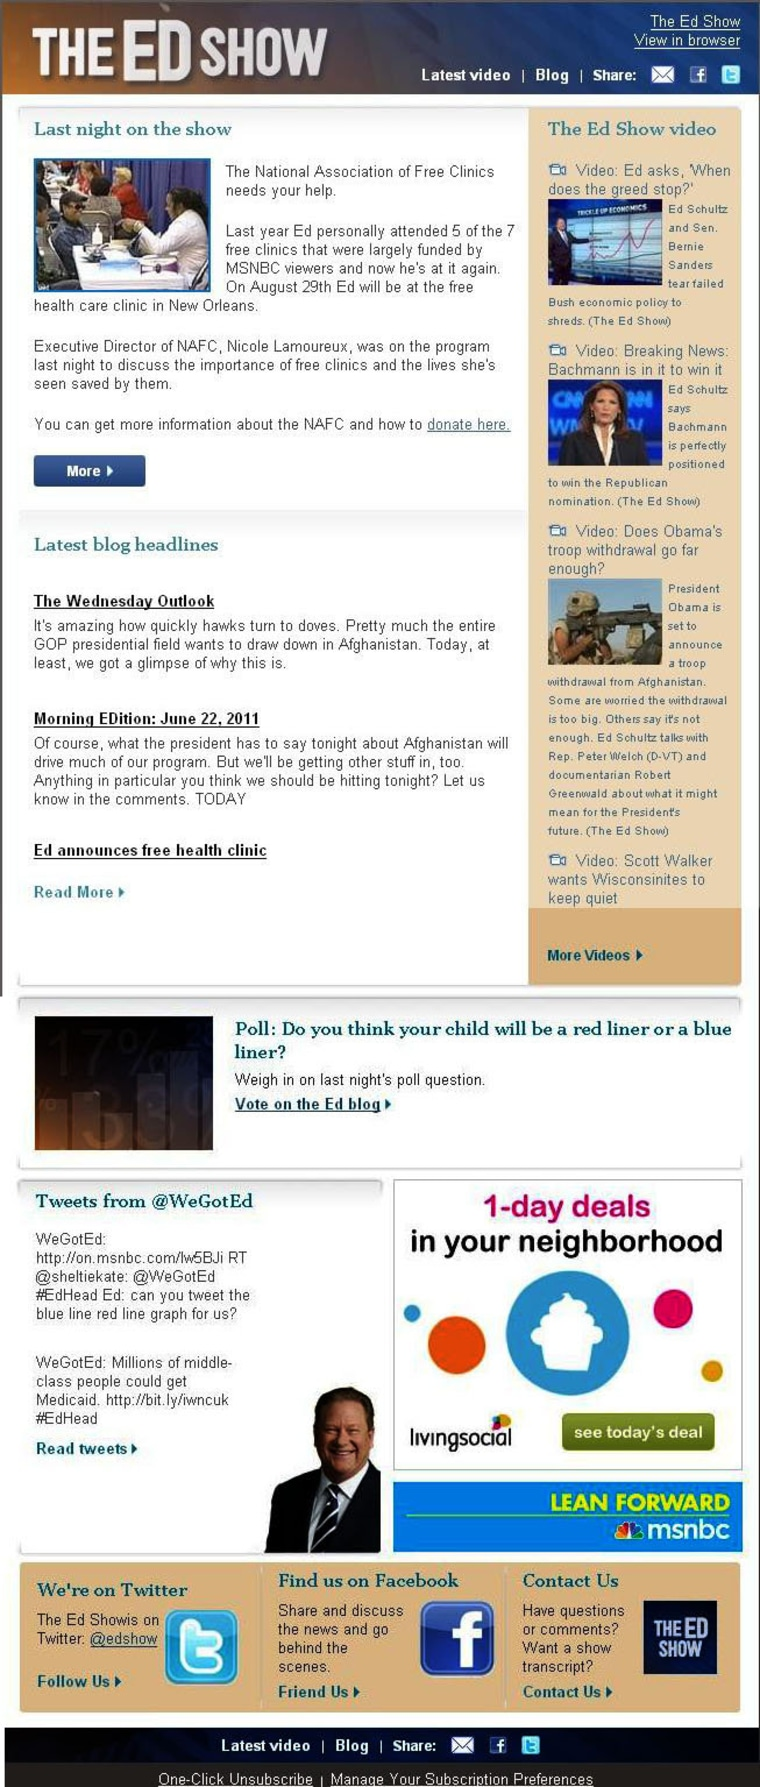 New Ed Show email newsletters